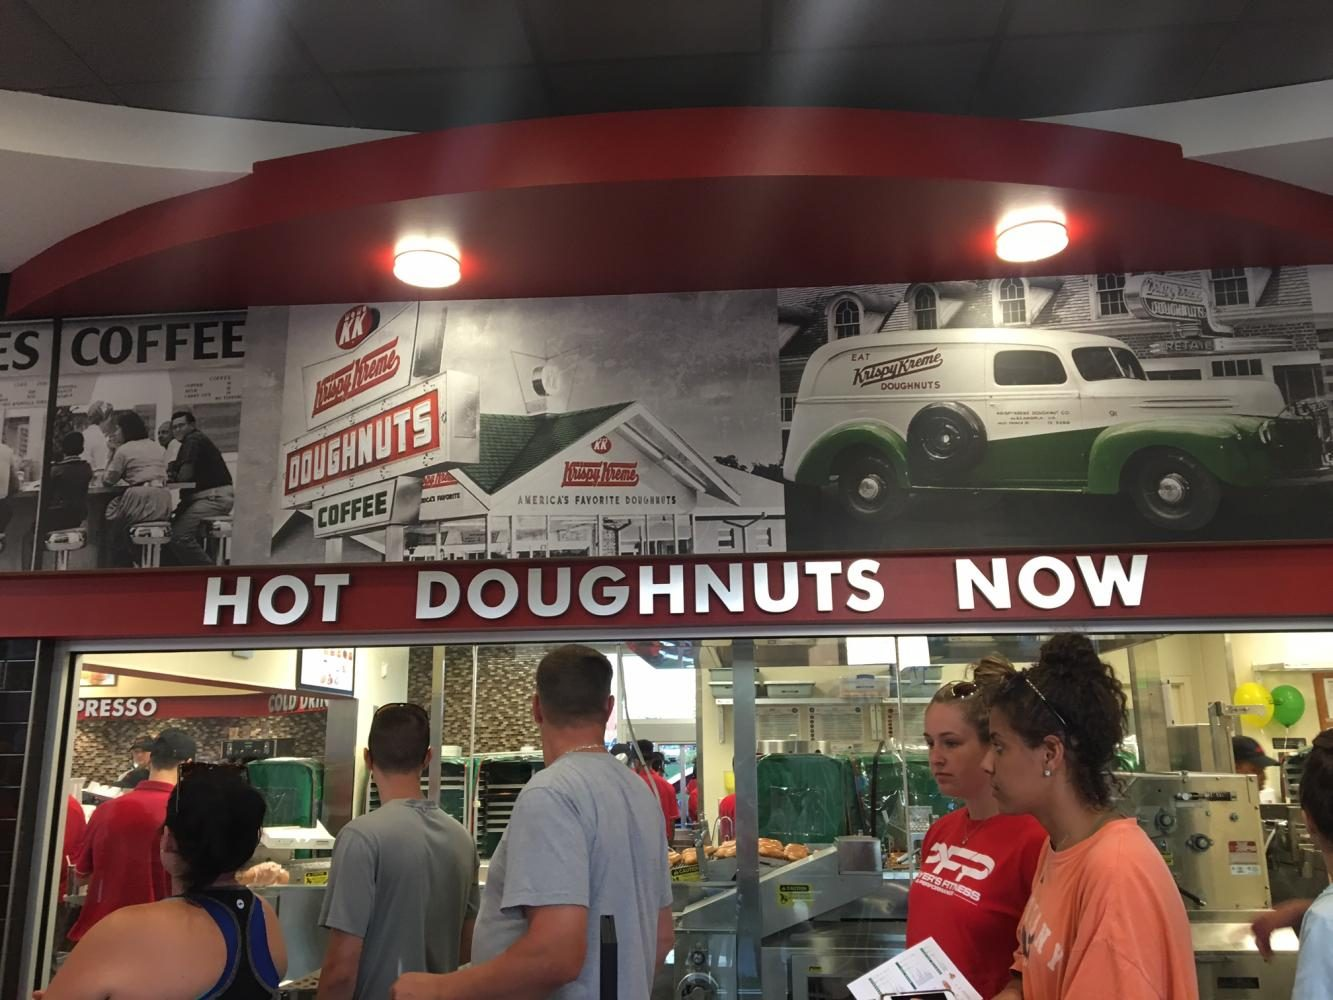 The+new+Krispy+Kreme+in+Frederick+features+a+window+where+patrons+can+watch+the+donuts+being+made.